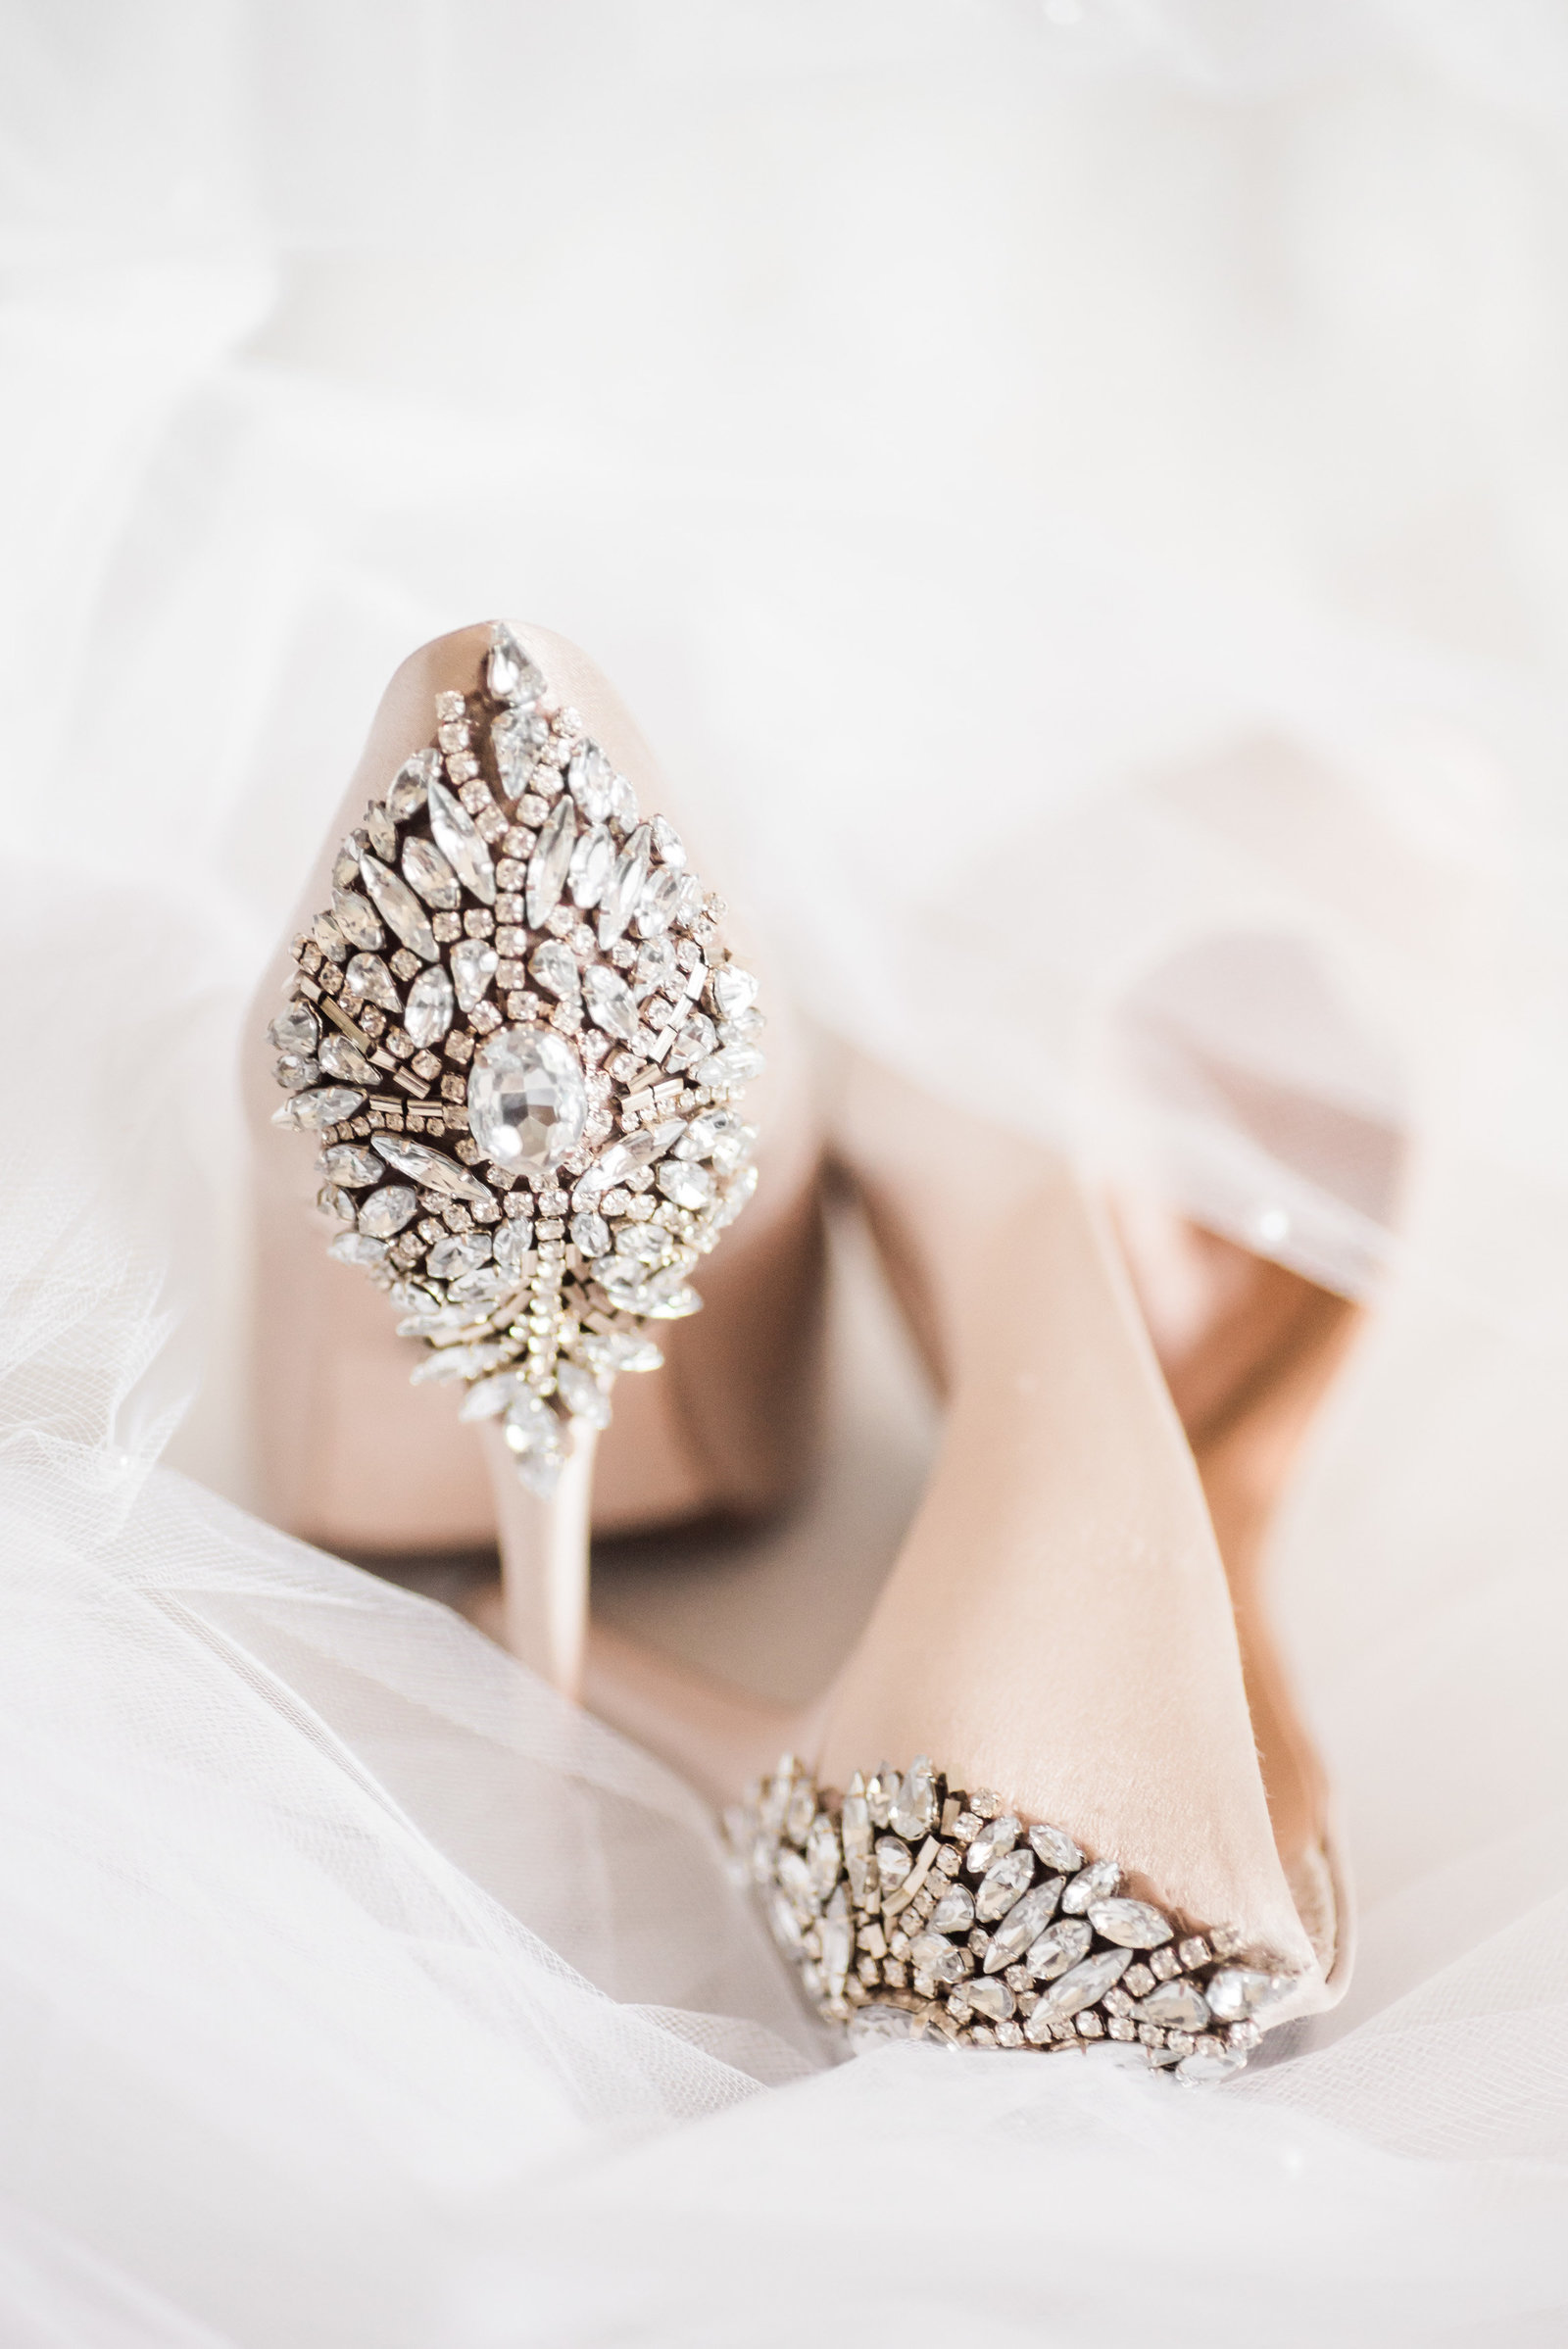 Tucson Skyline Country Club Wedding Photo of Bridal Details Badgley Mischka Blush Pink High Heel Shoes and Veil | Tucson Wedding Photographer | West End Photography